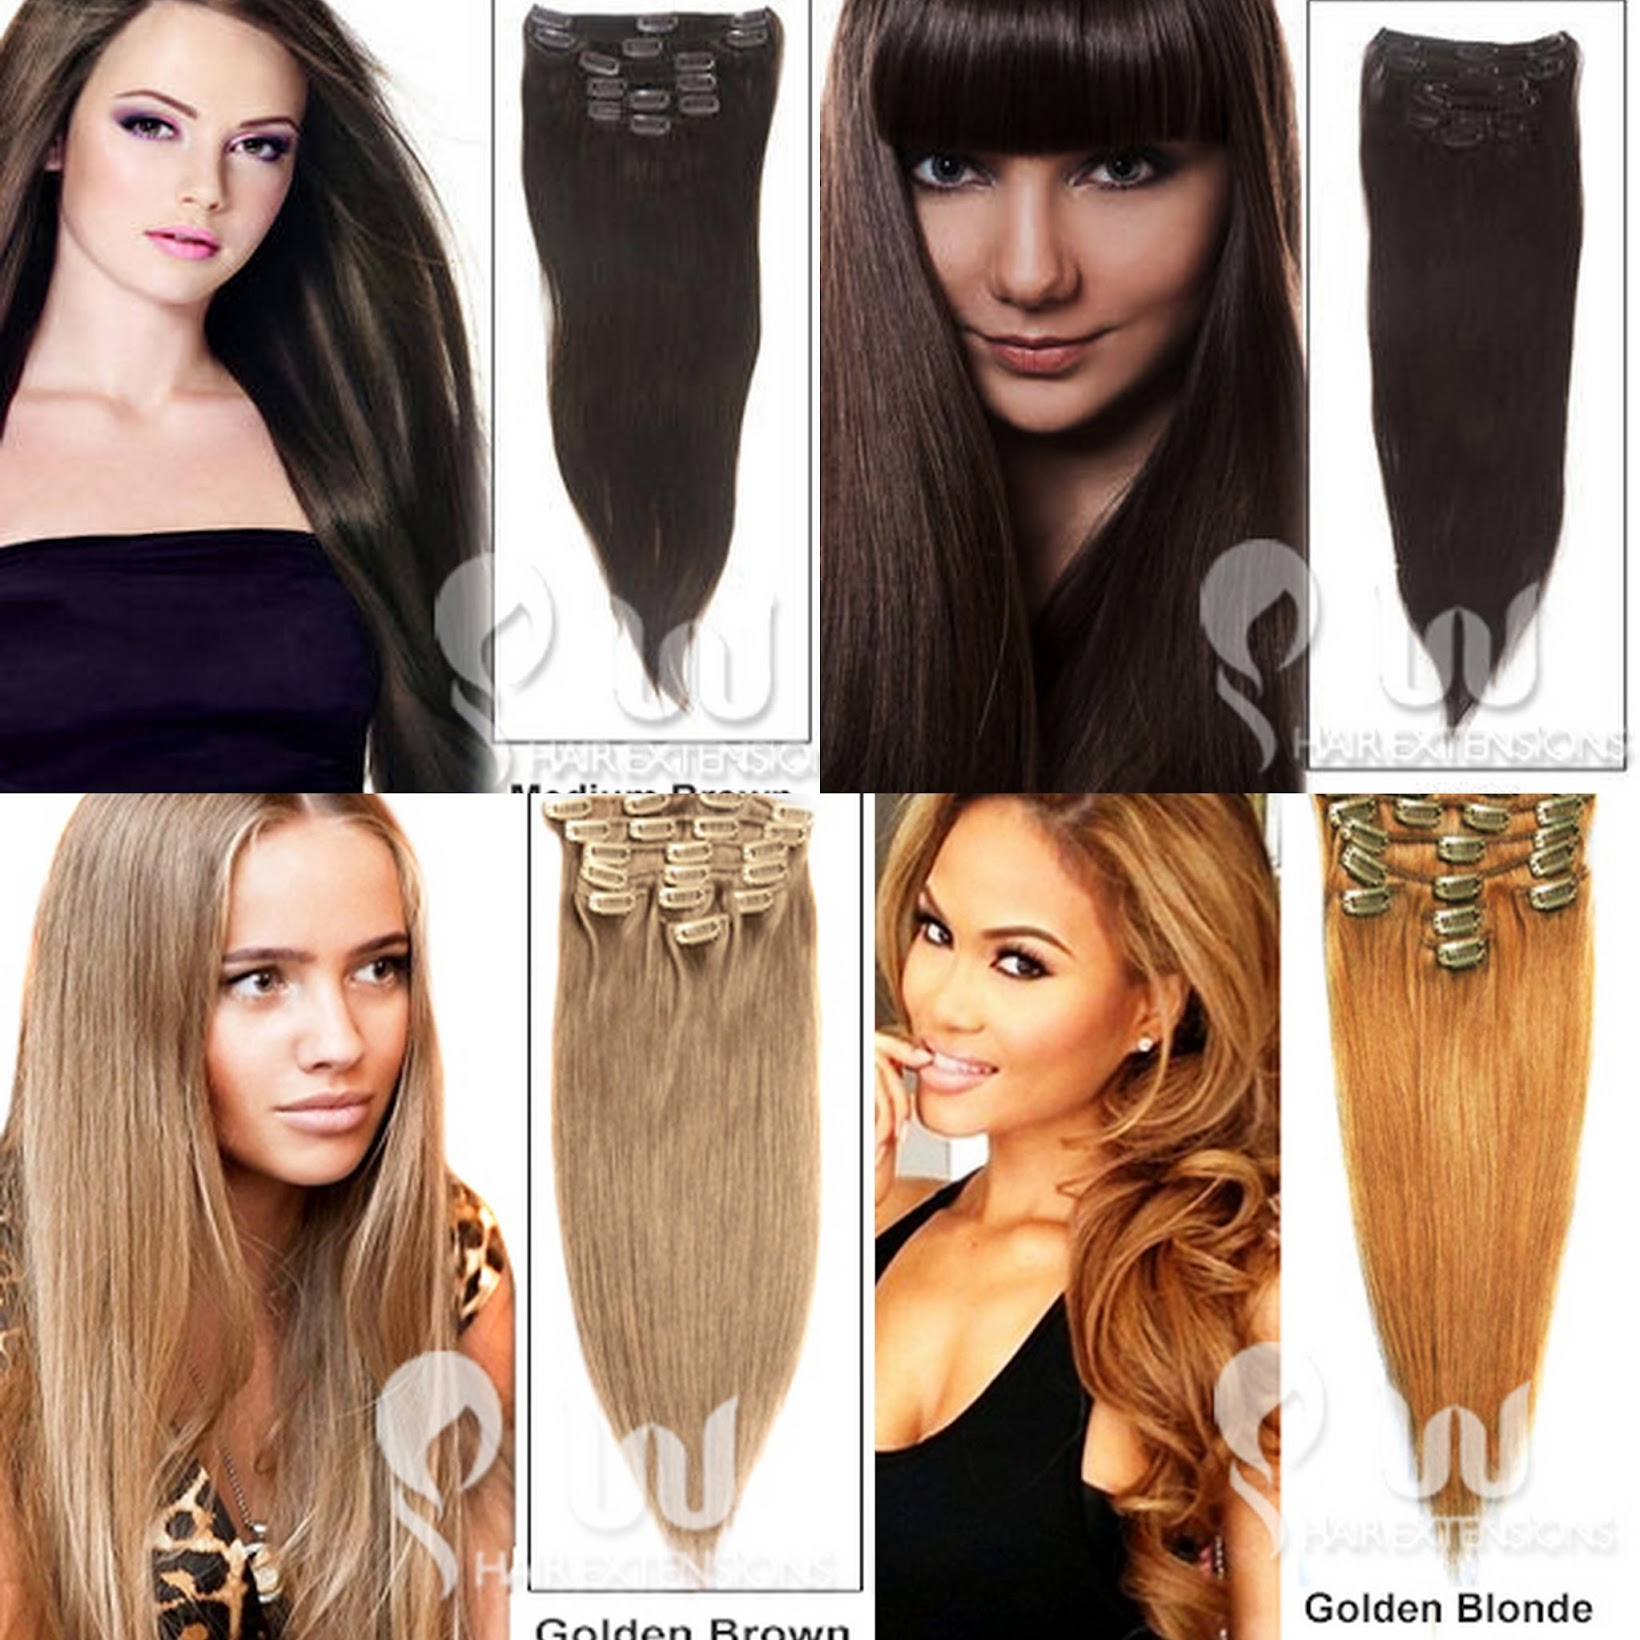 UU Hair extensions, Clip in hair extensions